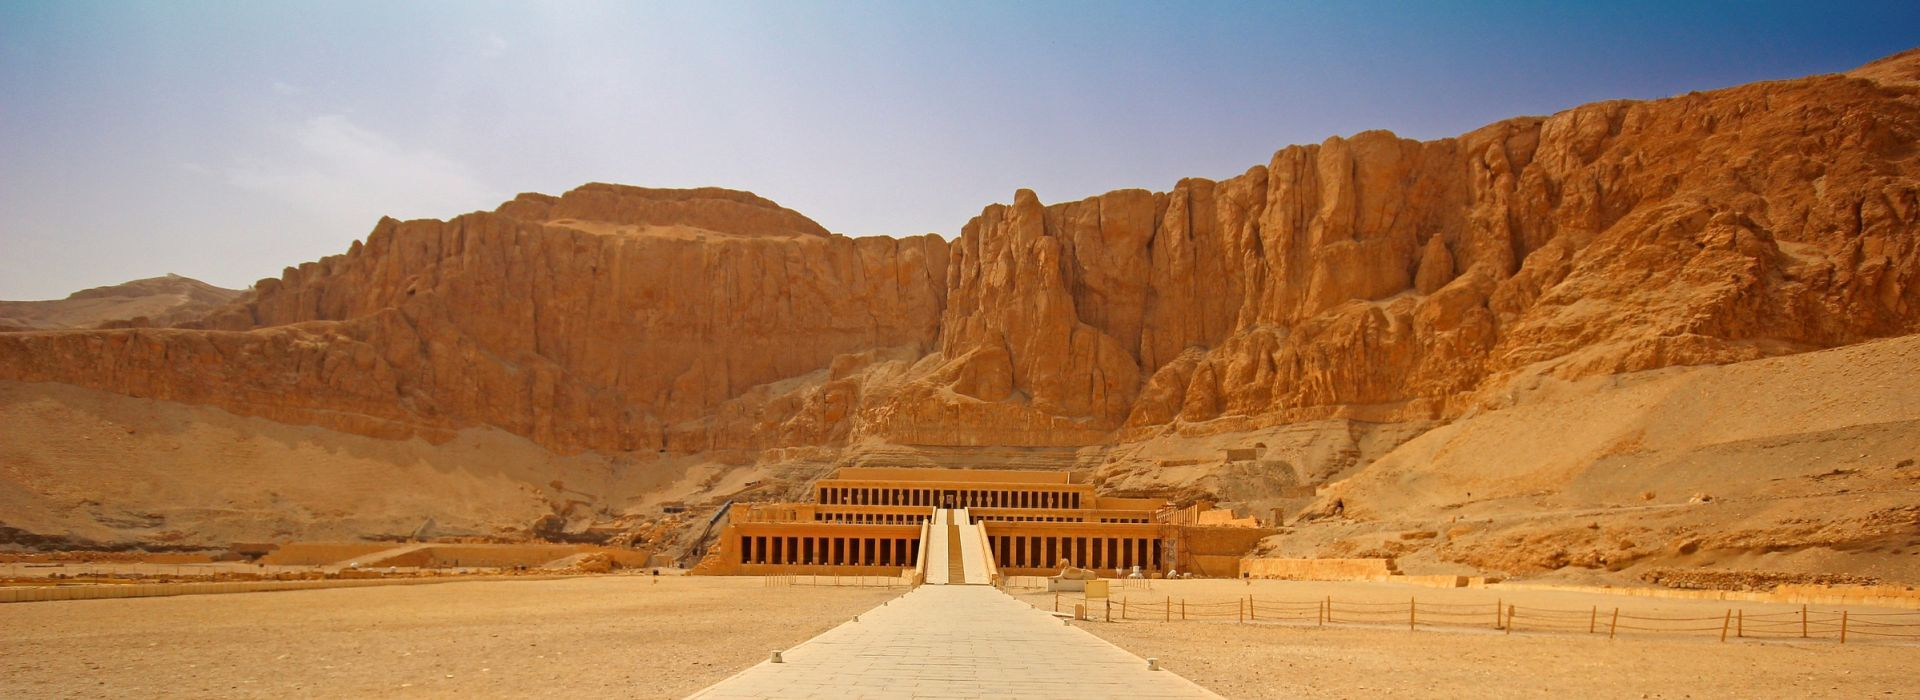 Beach, romance, getaways and relaxation Tours in Cairo